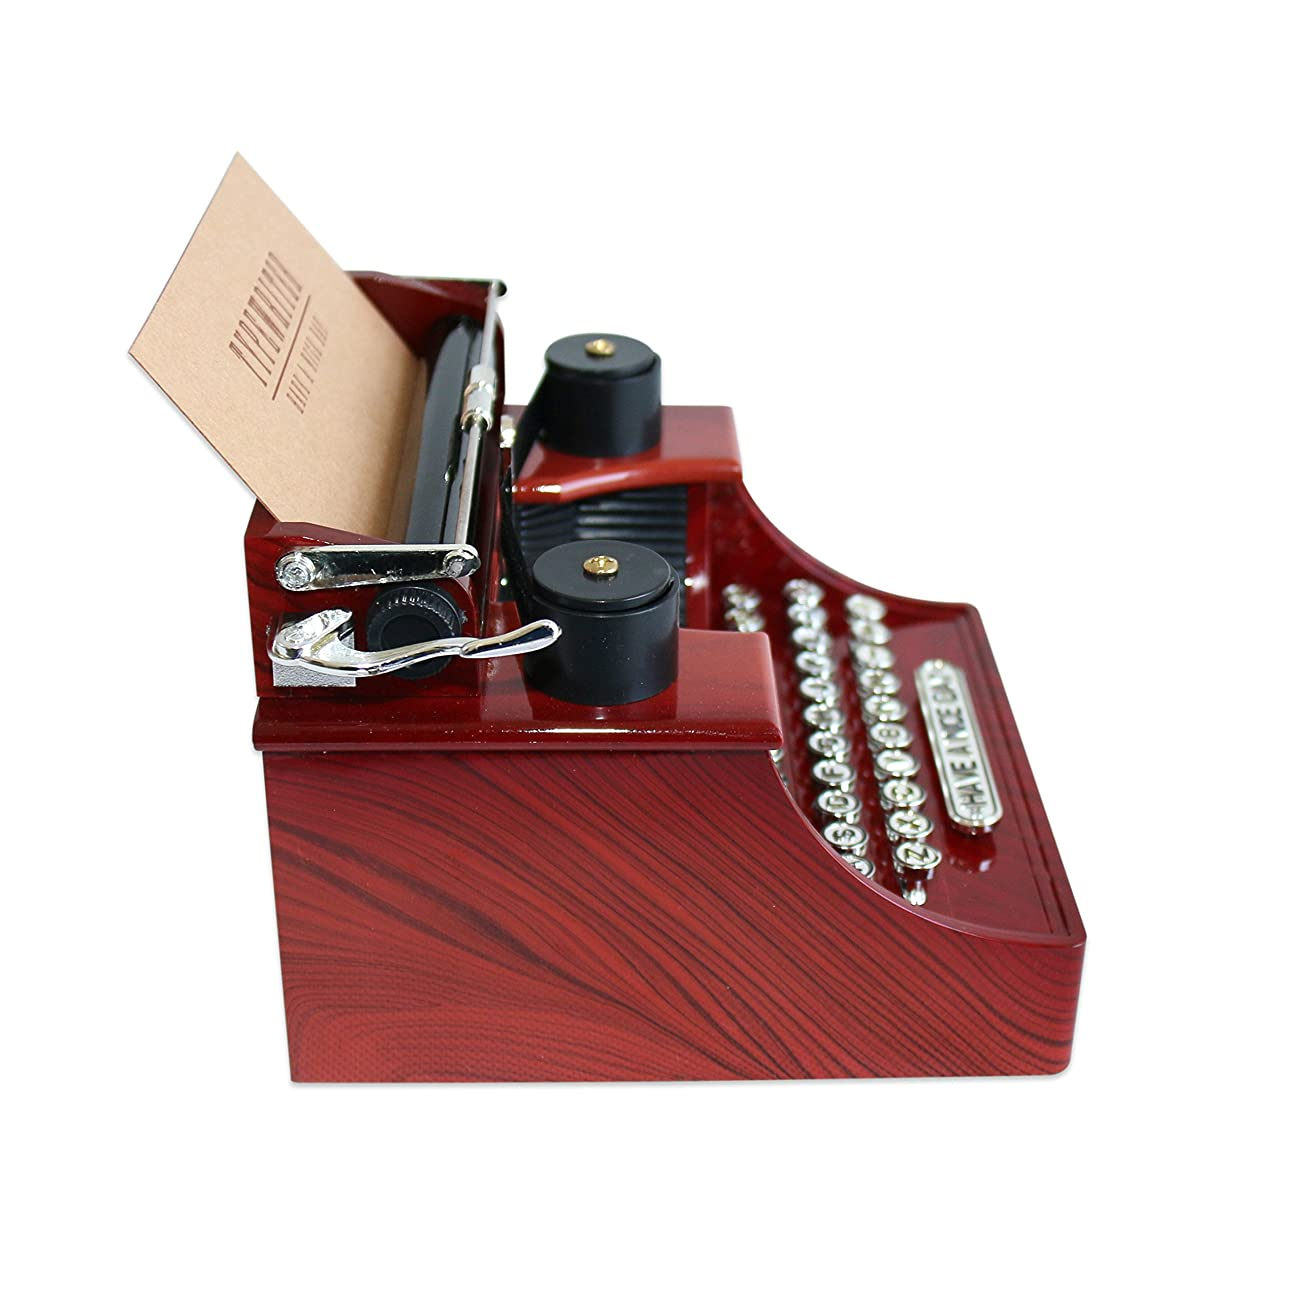 Alytimes Vintage Typewriter Music Box for Home/Office/Study Room Décor Decoration 2